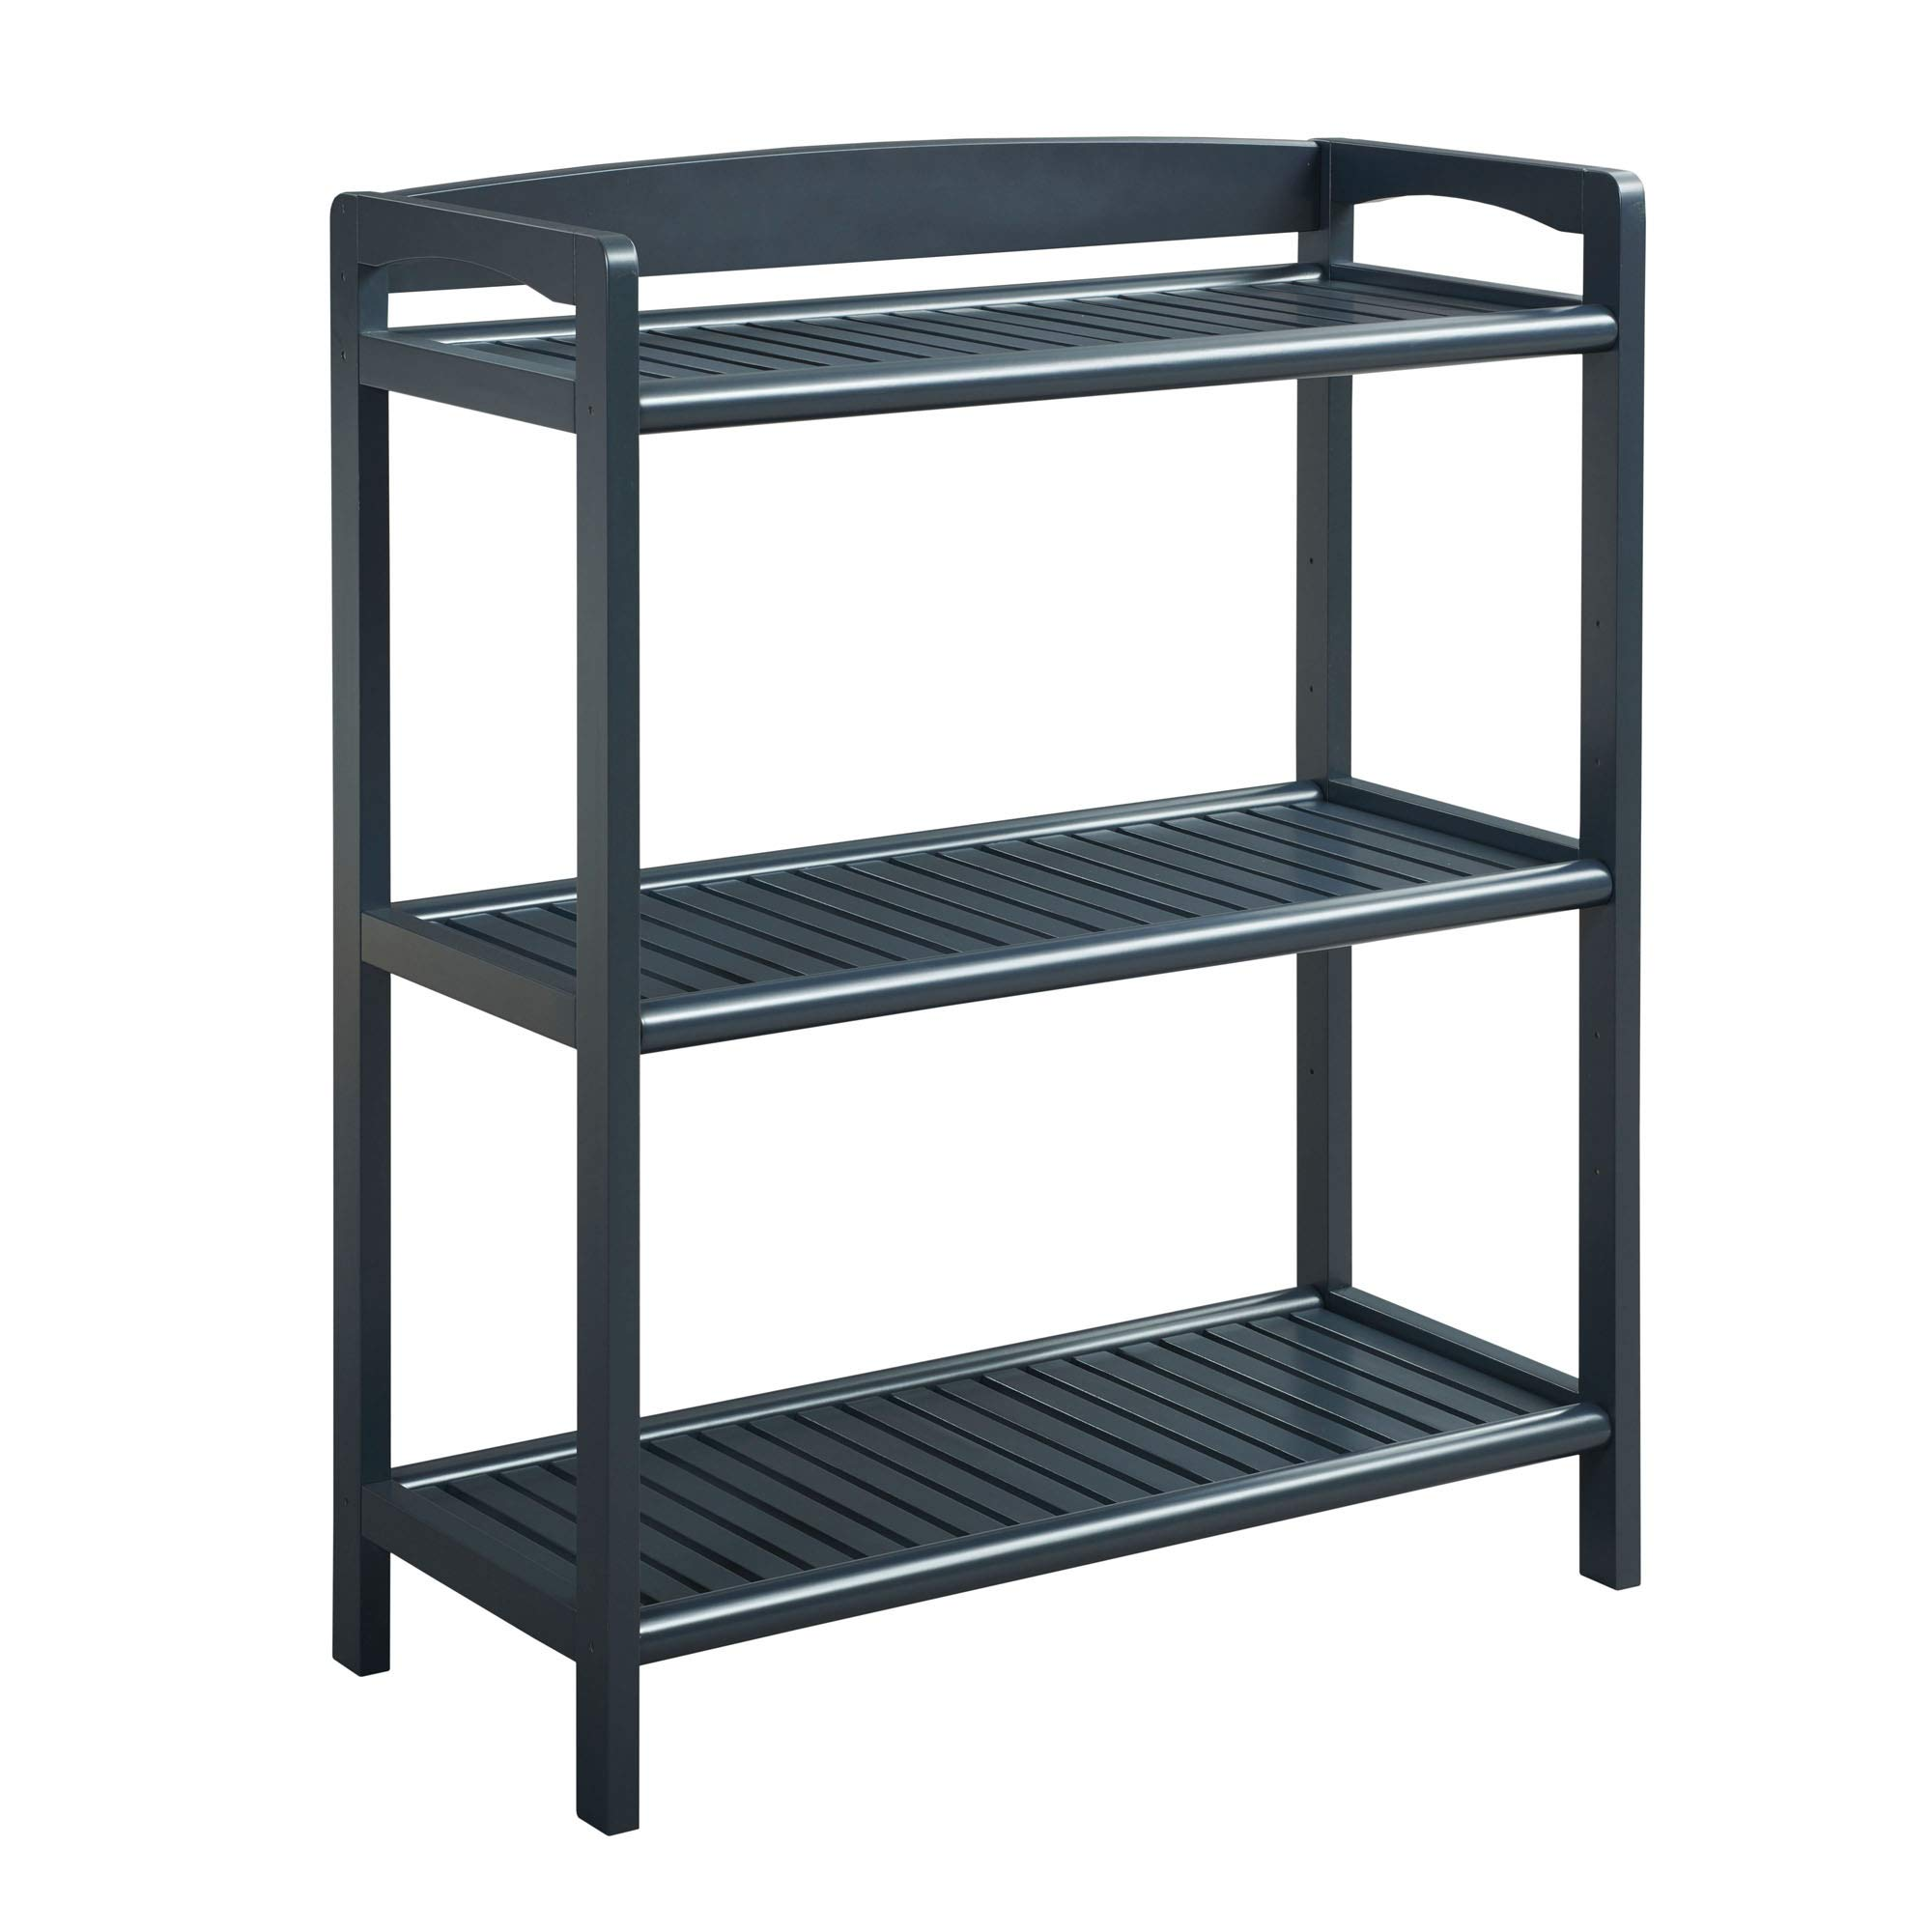 New Ridge Home Goods 2283-GRA Bookshelf Media Console with Adjustable Shelf, One Size, Graphite by New Ridge Home Goods